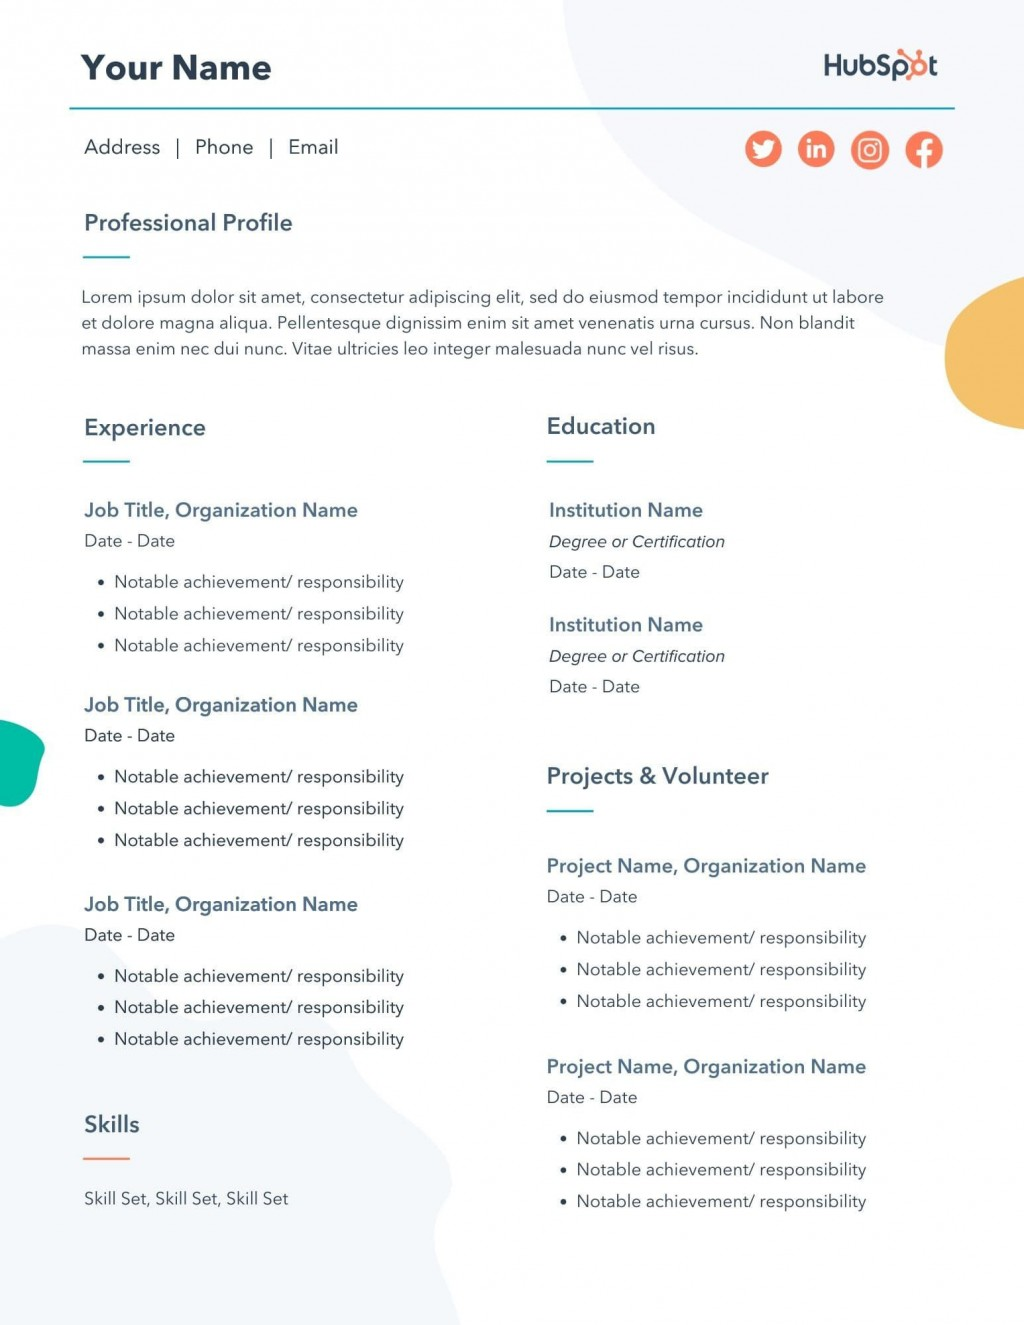 008 Phenomenal Create Resume Online Free Template Highest Quality Large